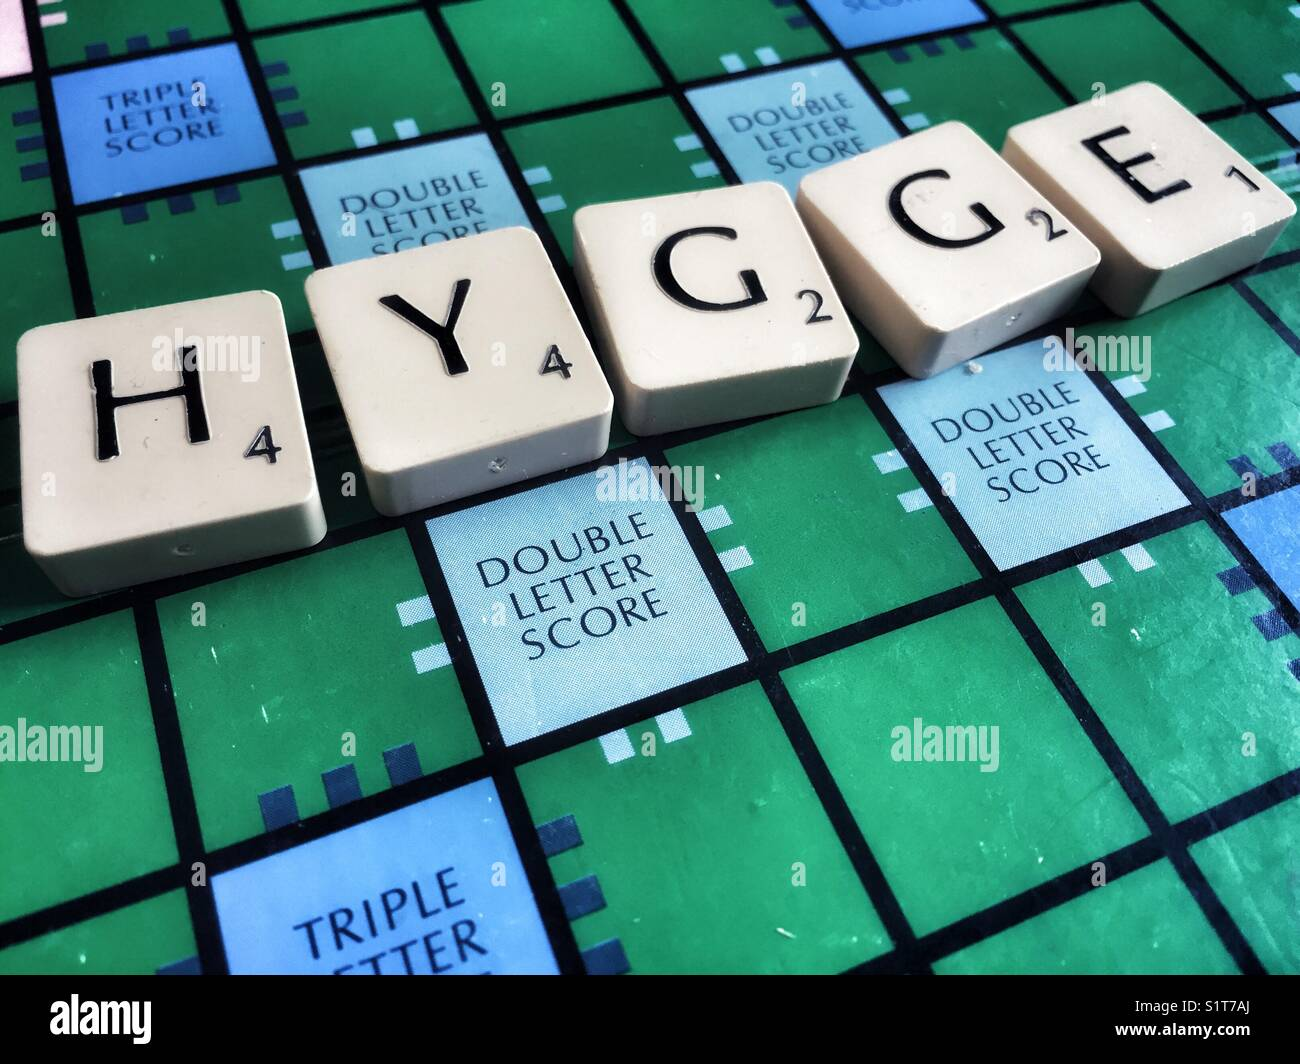 The Danish word hygge written on a scrabble board - Stock Image